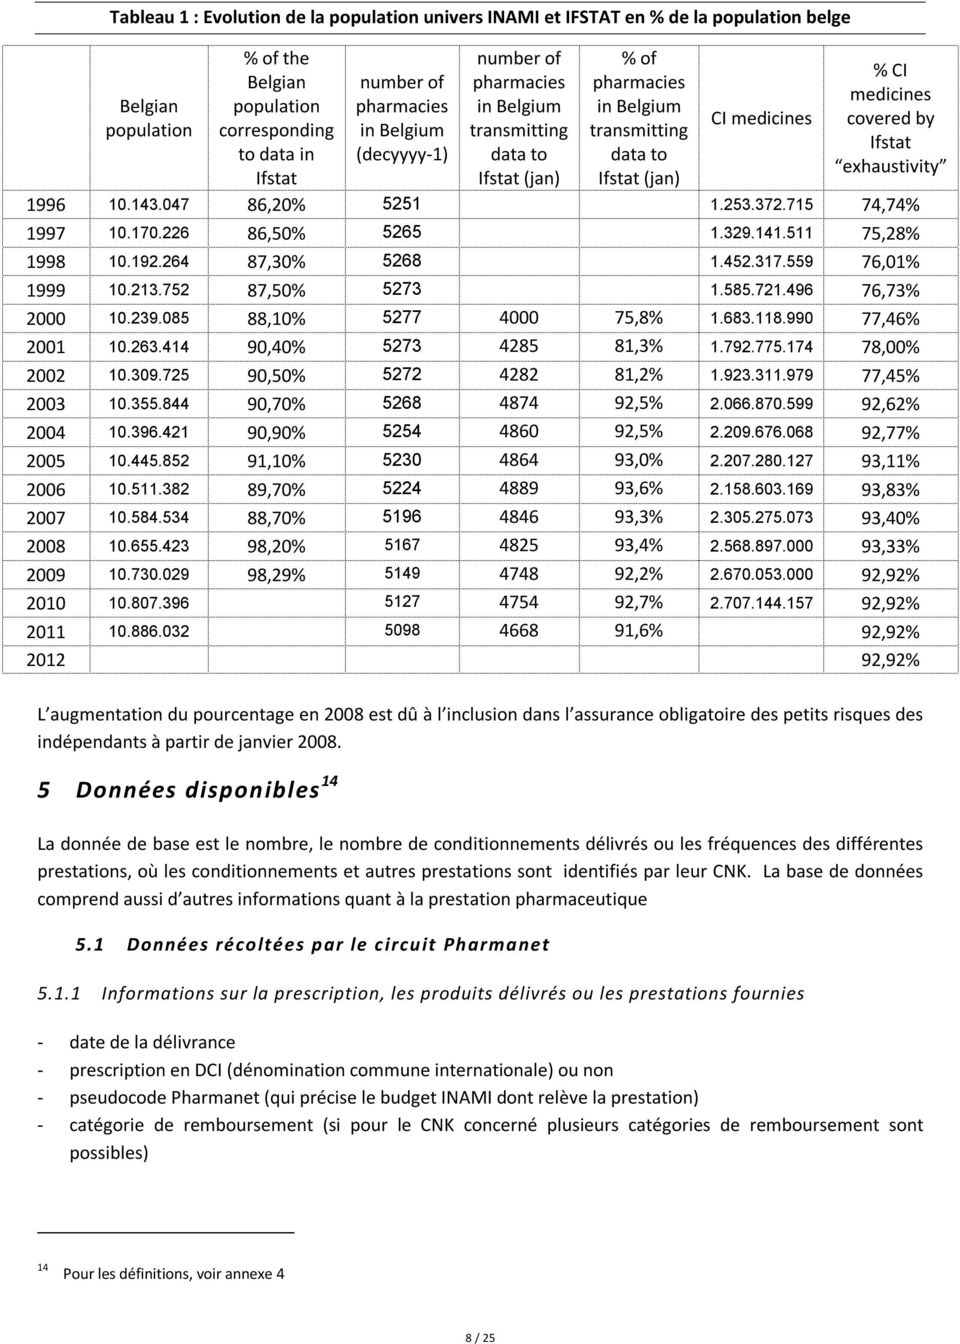 029 % of the Belgian population corresponding to data in Ifstat 86,20% 86,50% 87,30% 87,50% 88,10% 90,40% 90,50% 90,70% 90,90% 91,10% 89,70% 88,70% 98,20% 98,29% number of pharmacies in Belgium